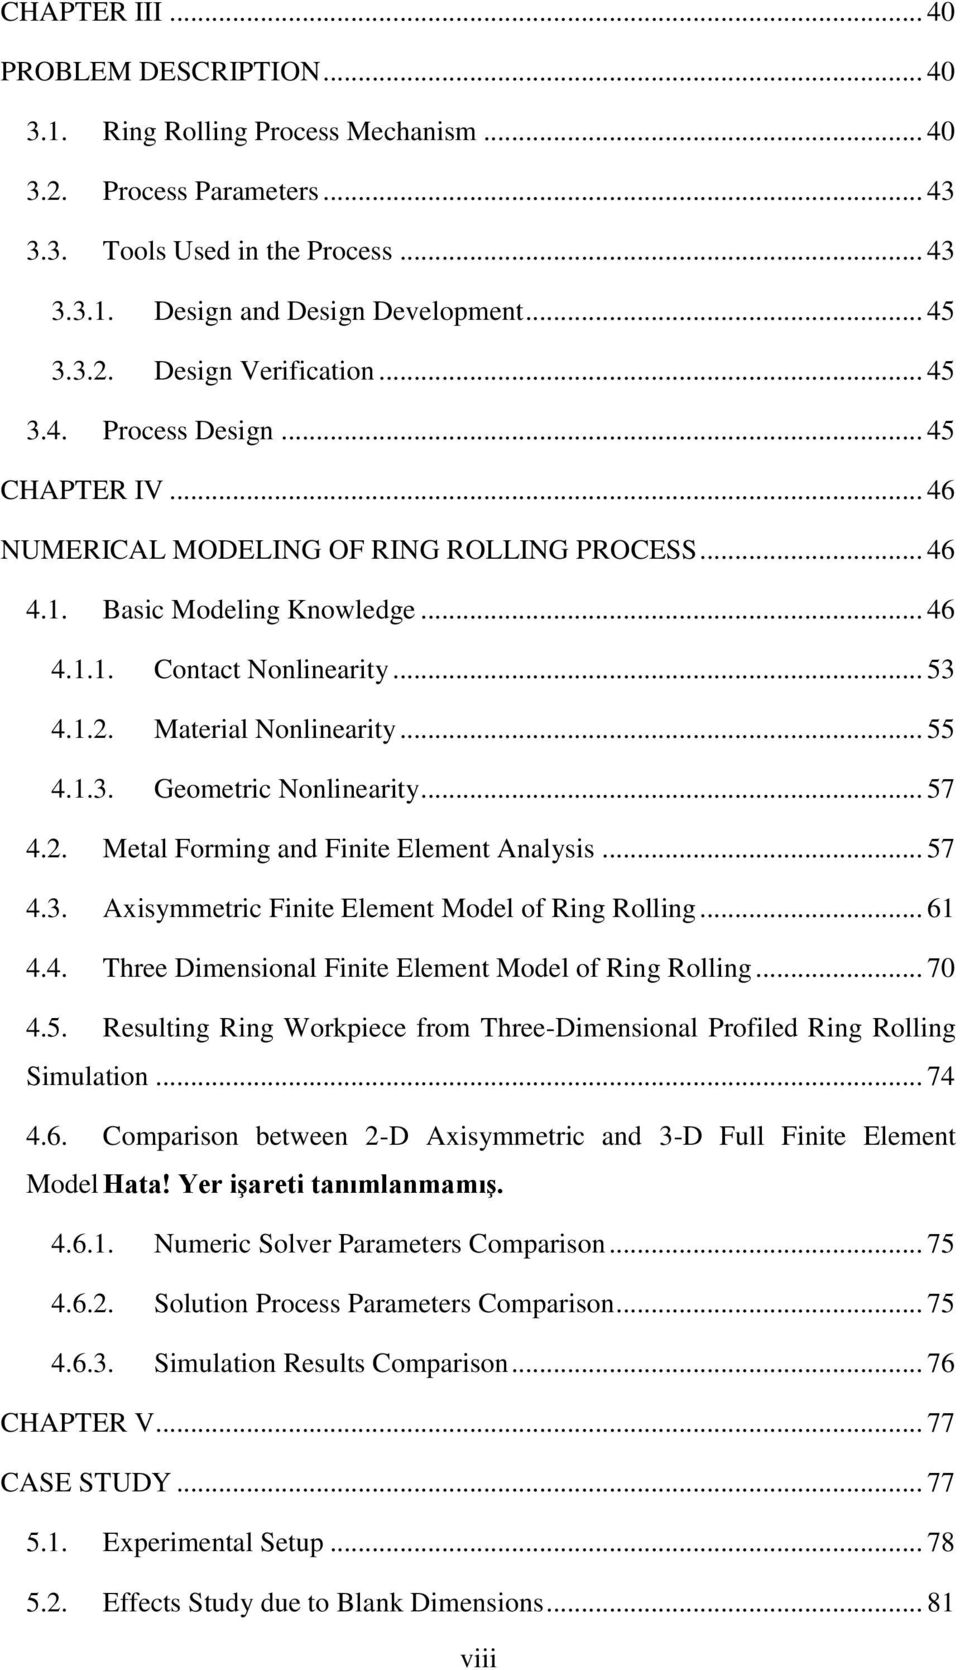 .. 55 4.1.3. Geometric Nonlinearity... 57 4.2. Metal Forming and Finite Element Analysis... 57 4.3. Axisymmetric Finite Element Model of Ring Rolling... 61 4.4. Three Dimensional Finite Element Model of Ring Rolling.